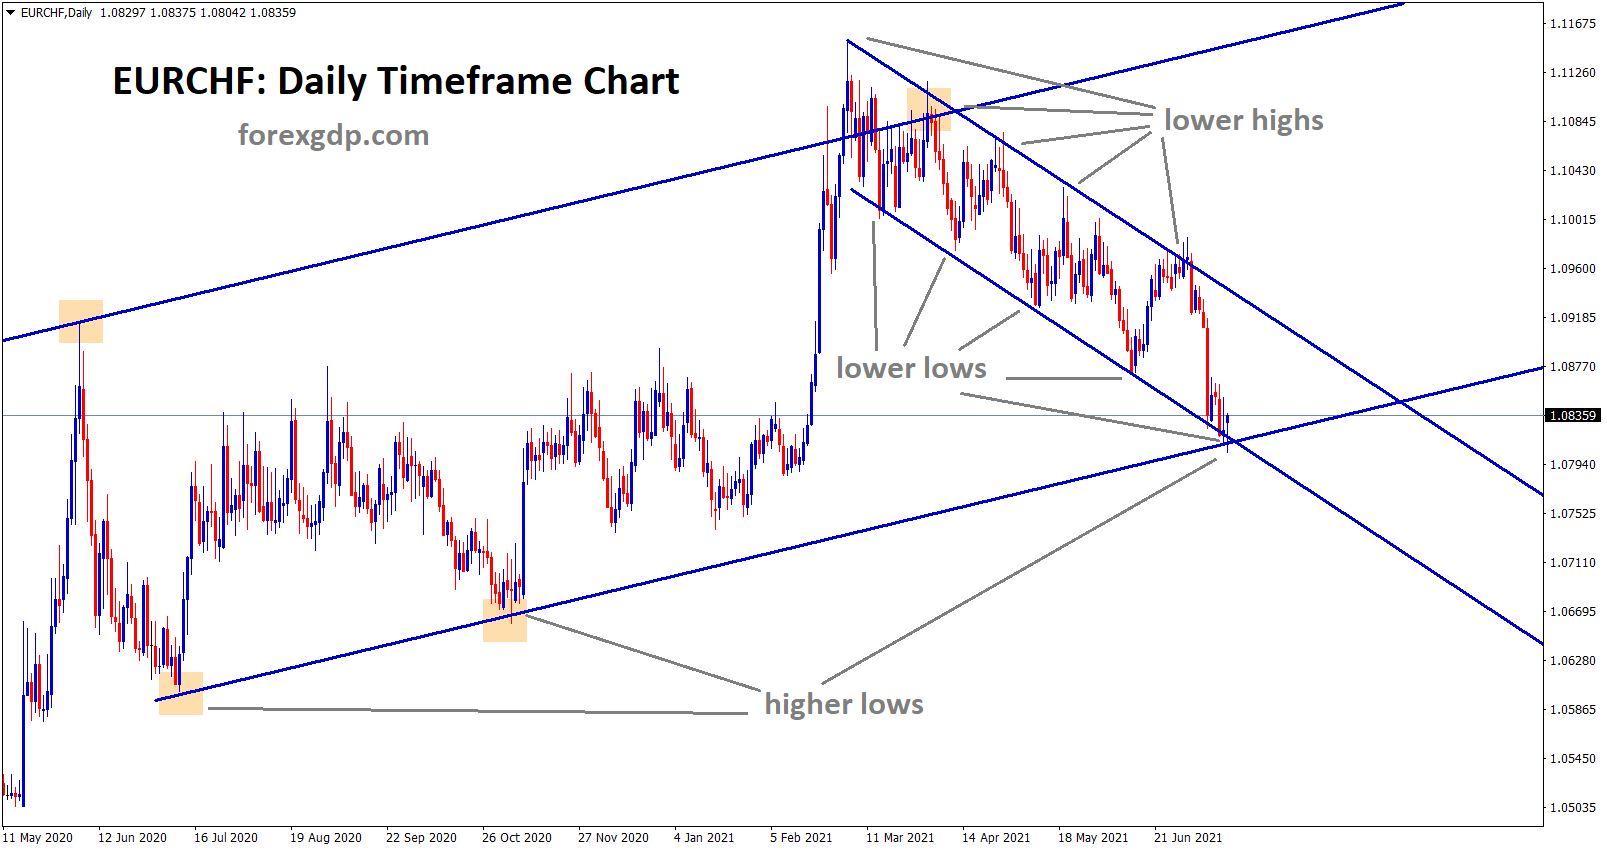 EURCHF has reached the low level in both Ascending and descending channels expecting bounce back